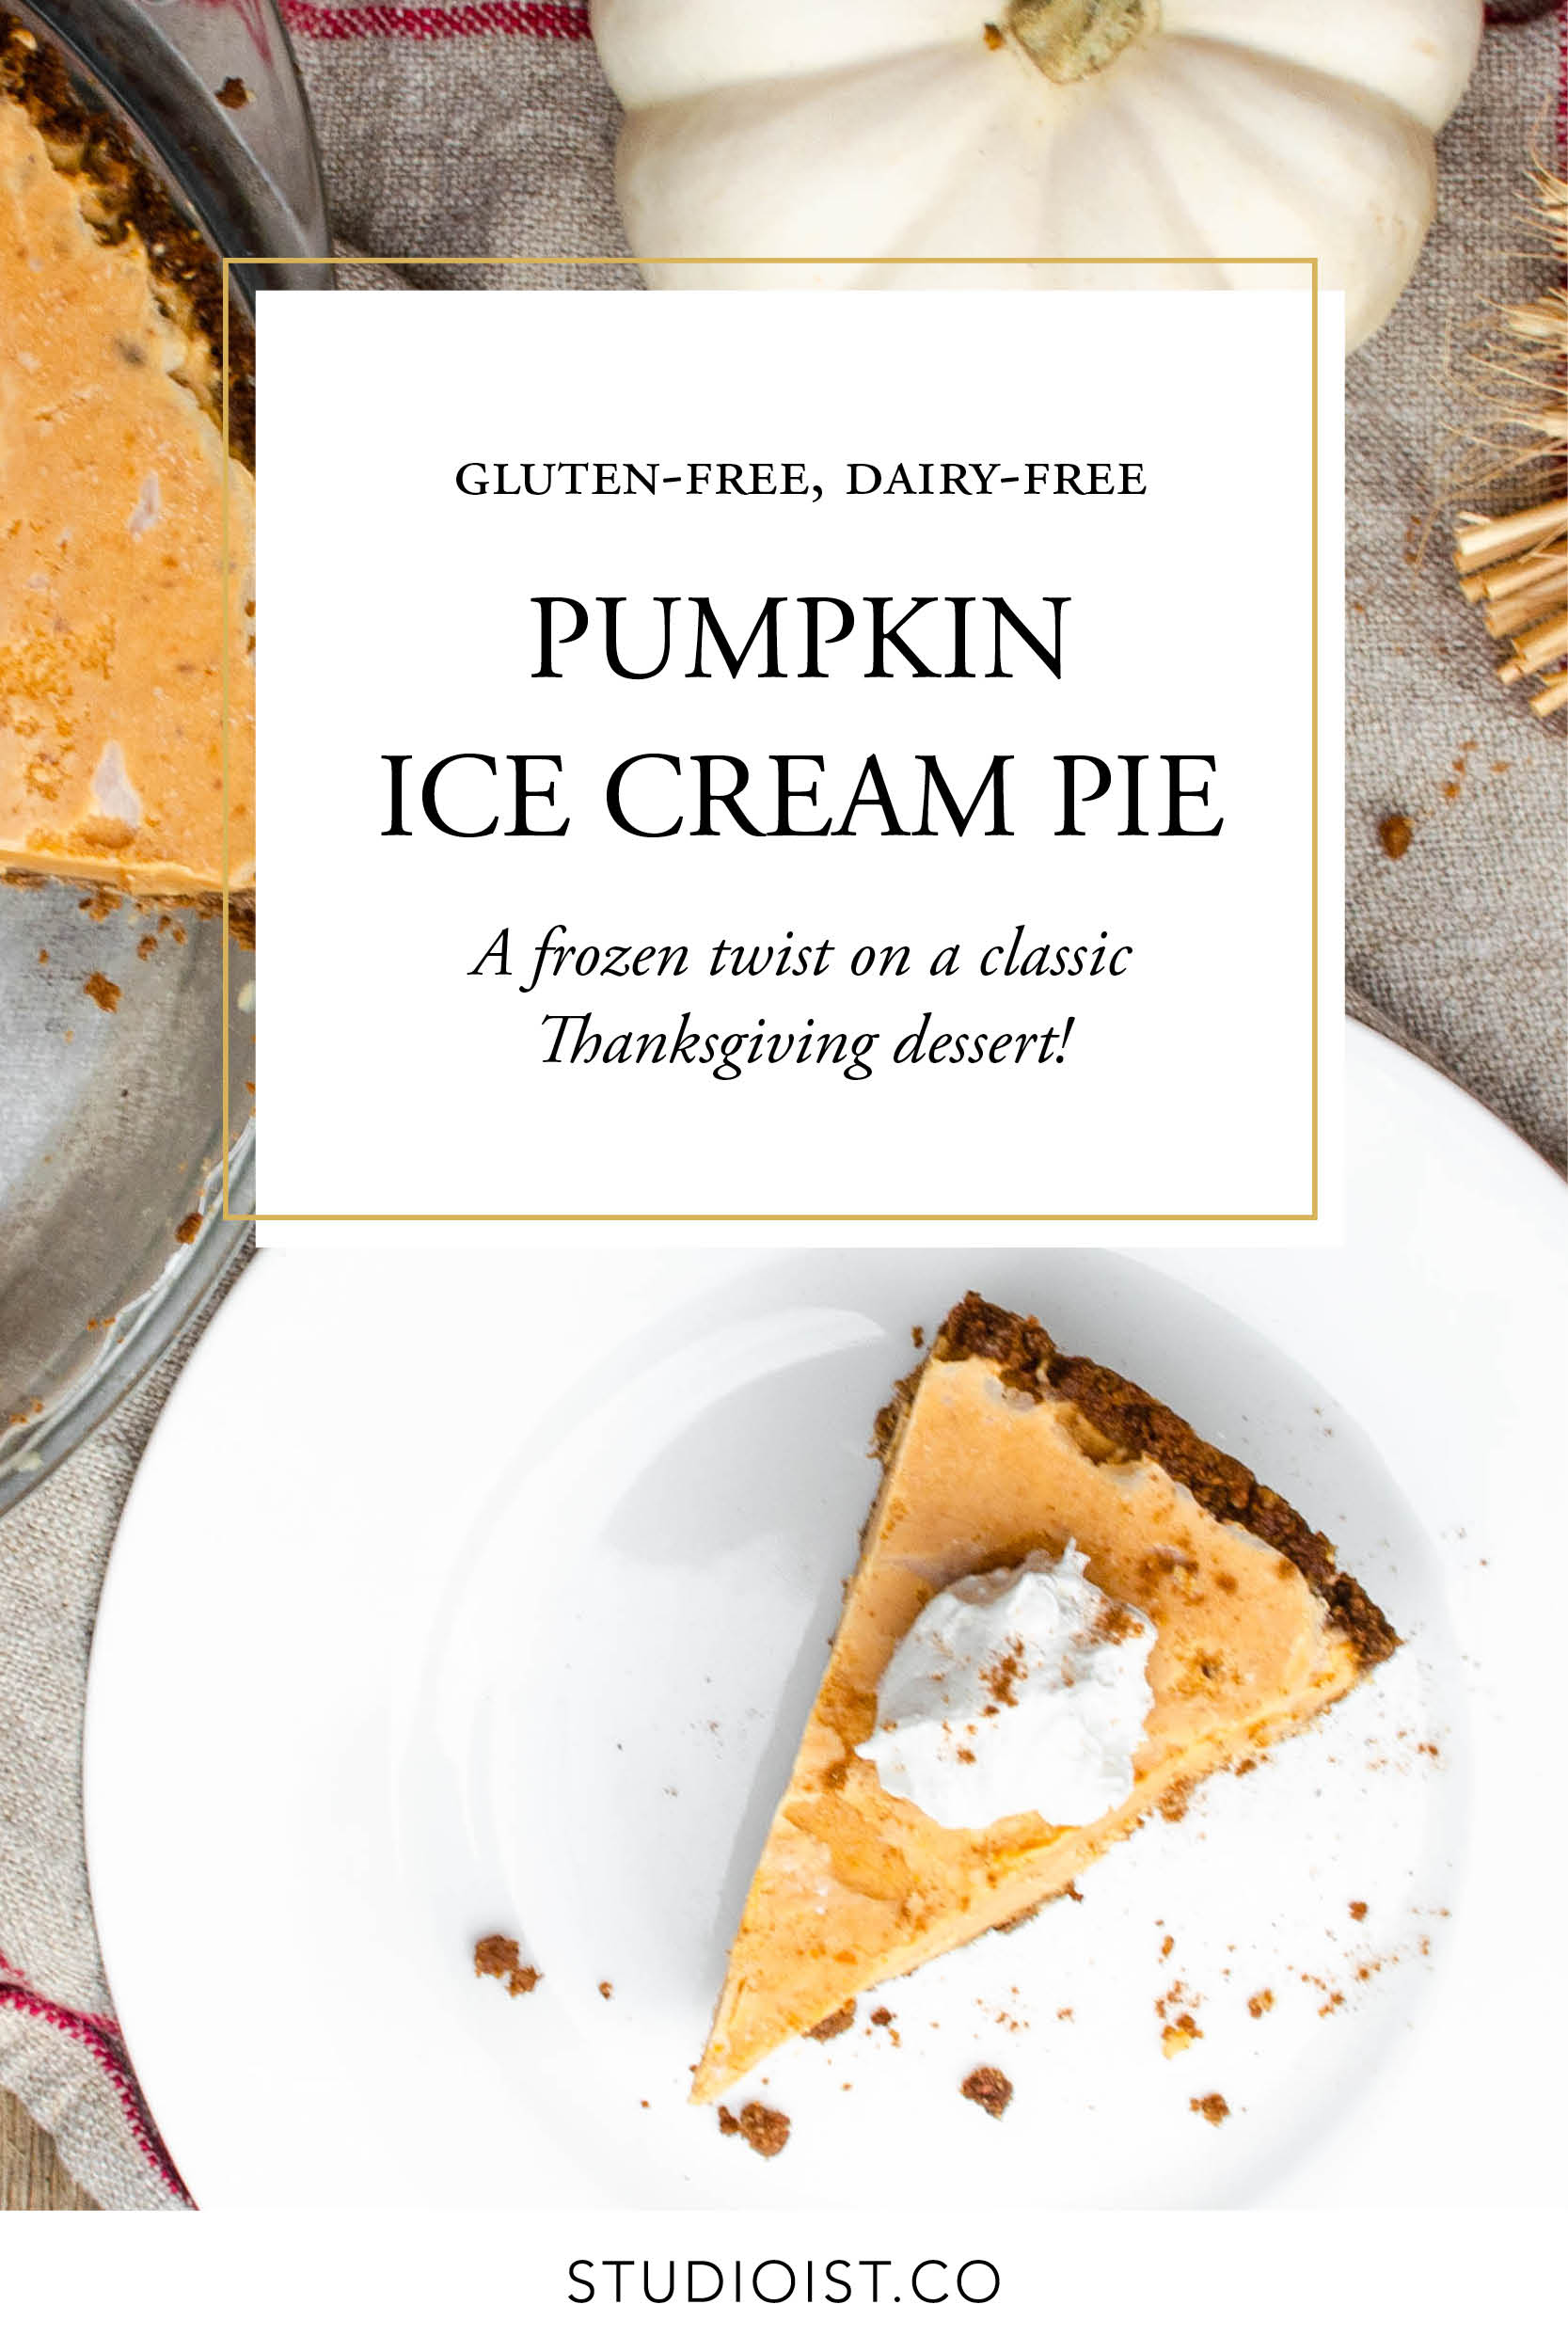 Studioist_Pinterest Design_Pumpkin Ice Cream Pie.jpg